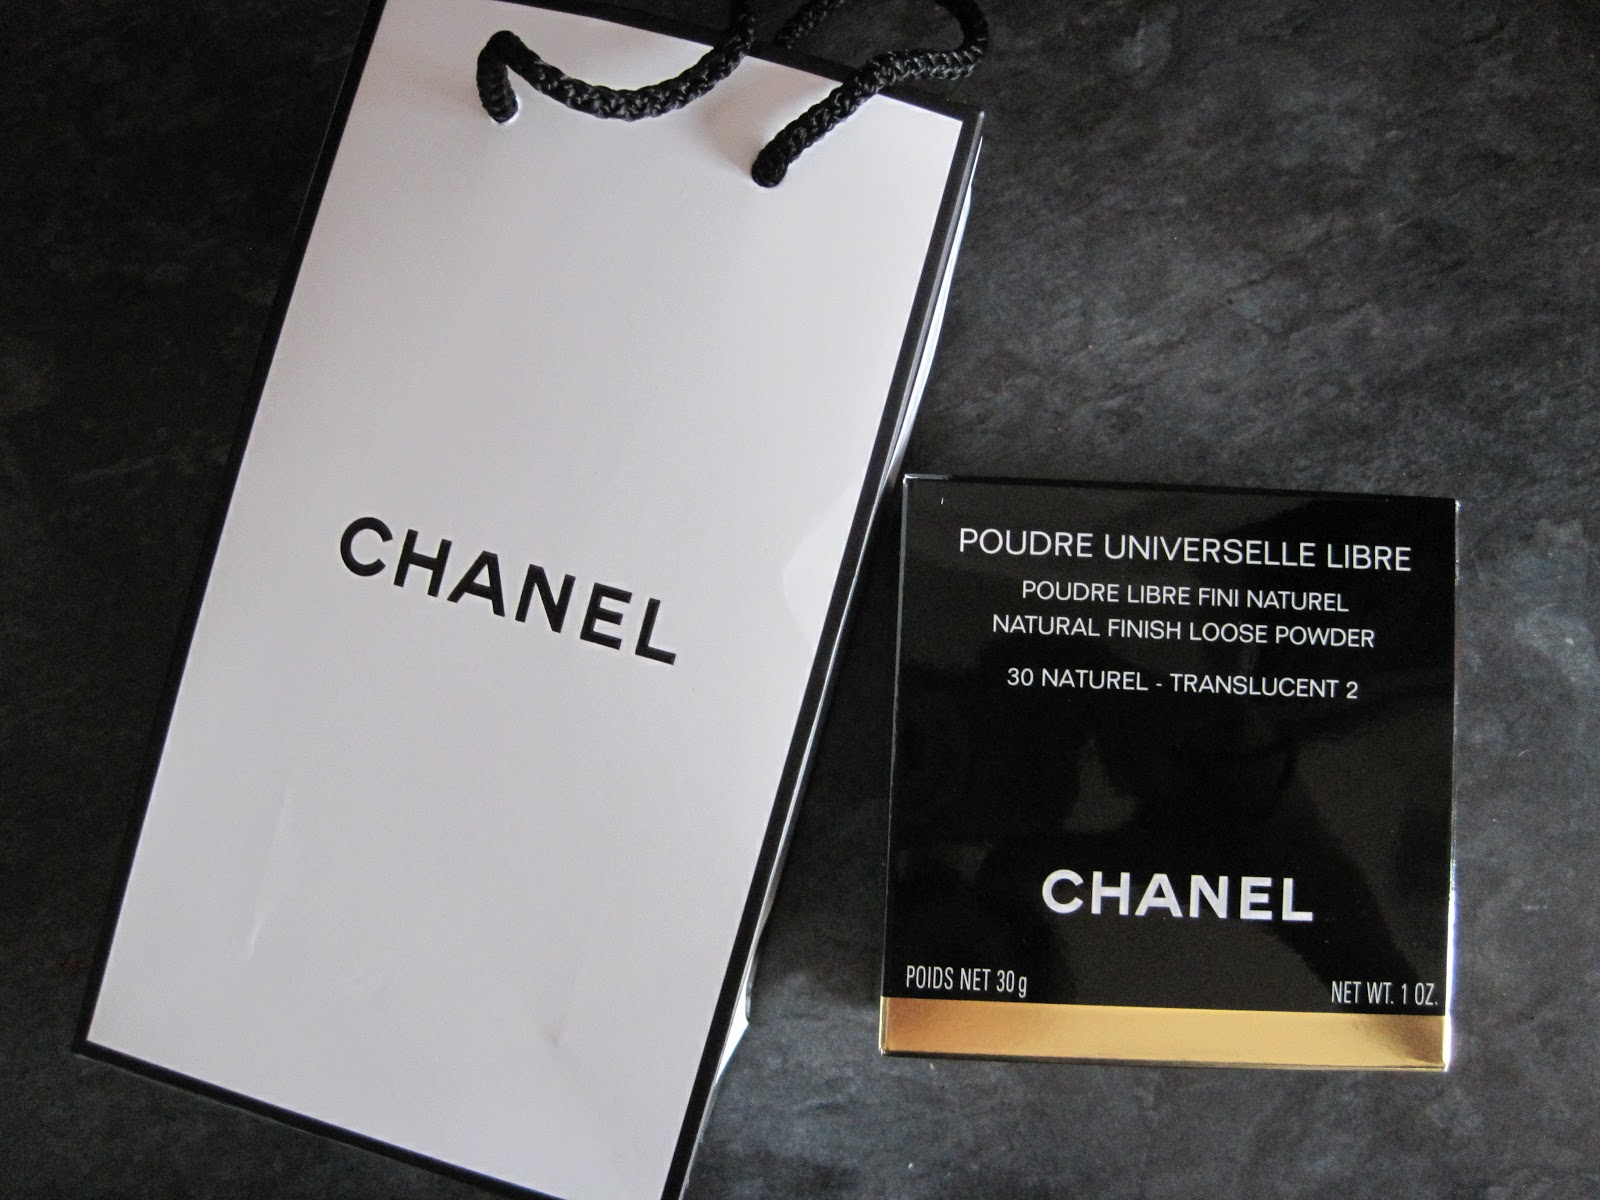 Just Charlie G Chanel Poudre Universelle Libre